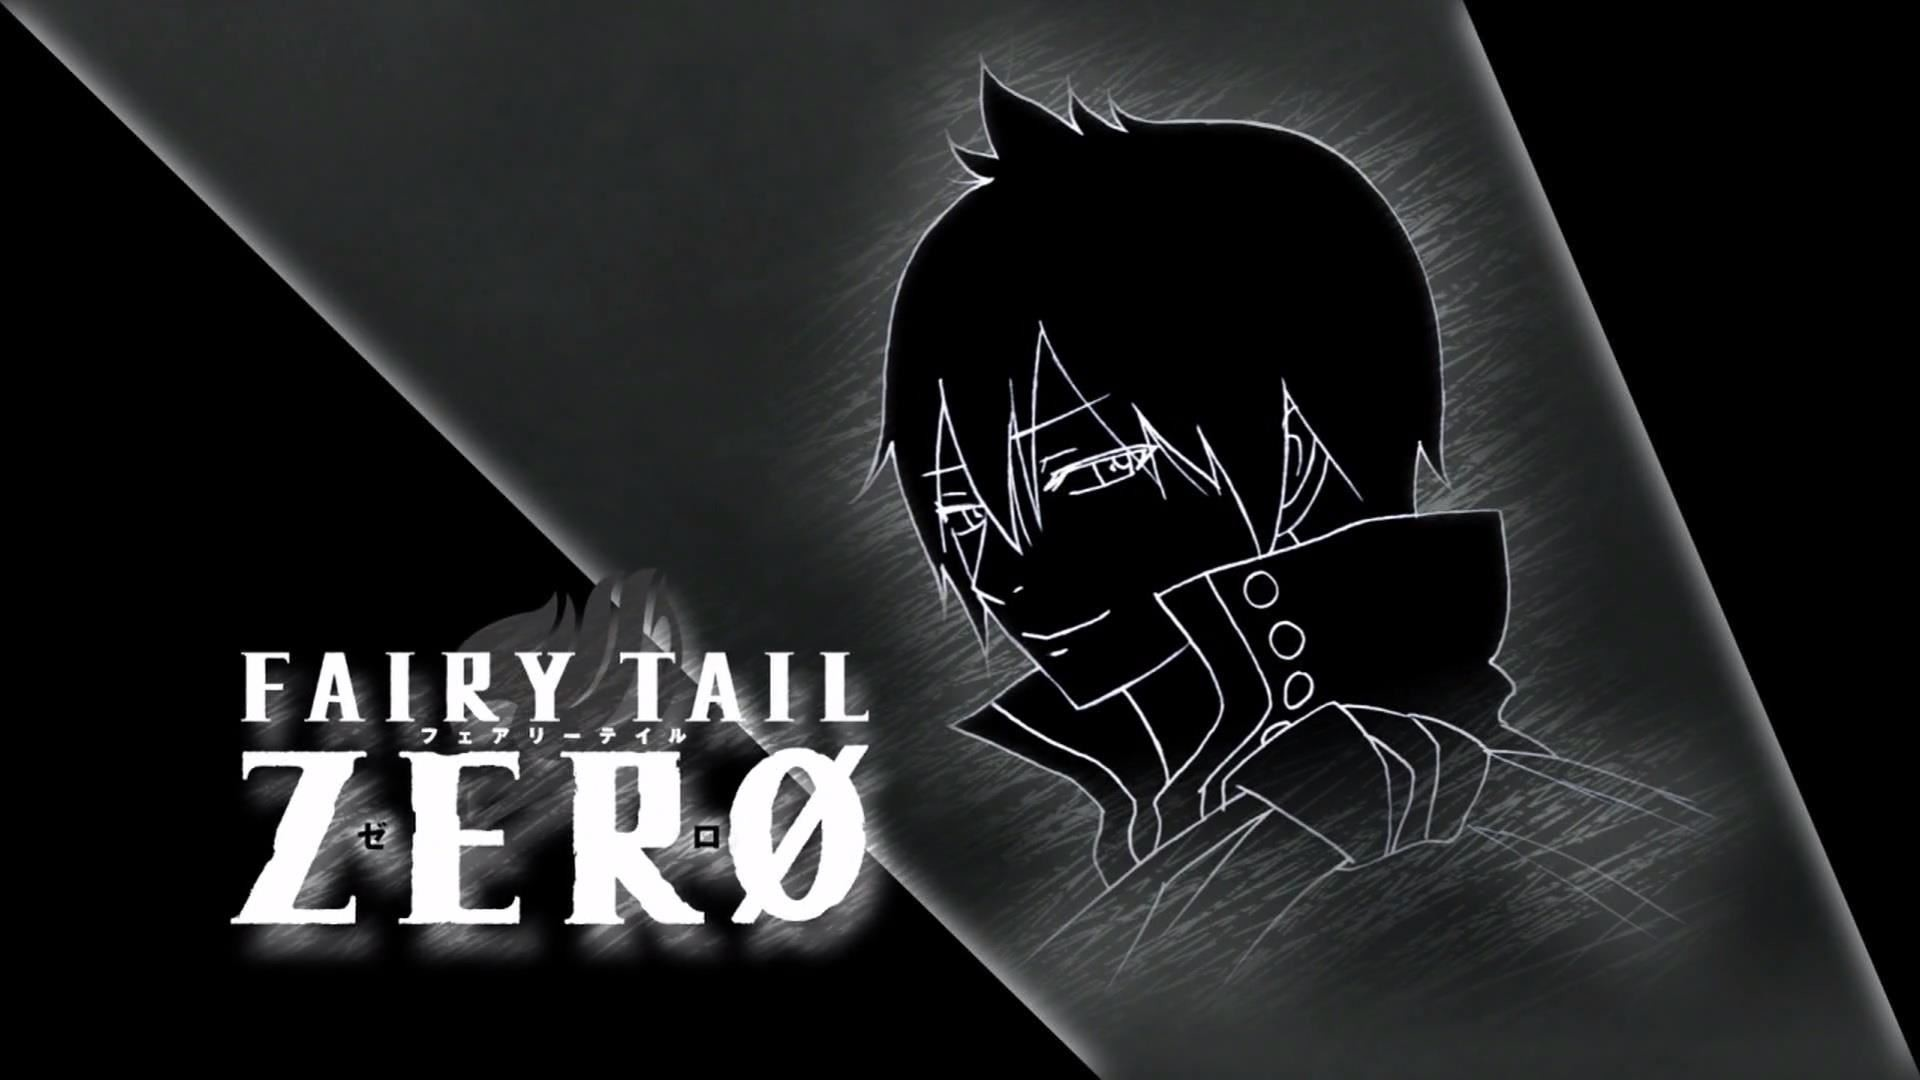 Fairy tail logo wallpaper 67 images 1980x1080 anime fairy tail bakgrund biocorpaavc Gallery